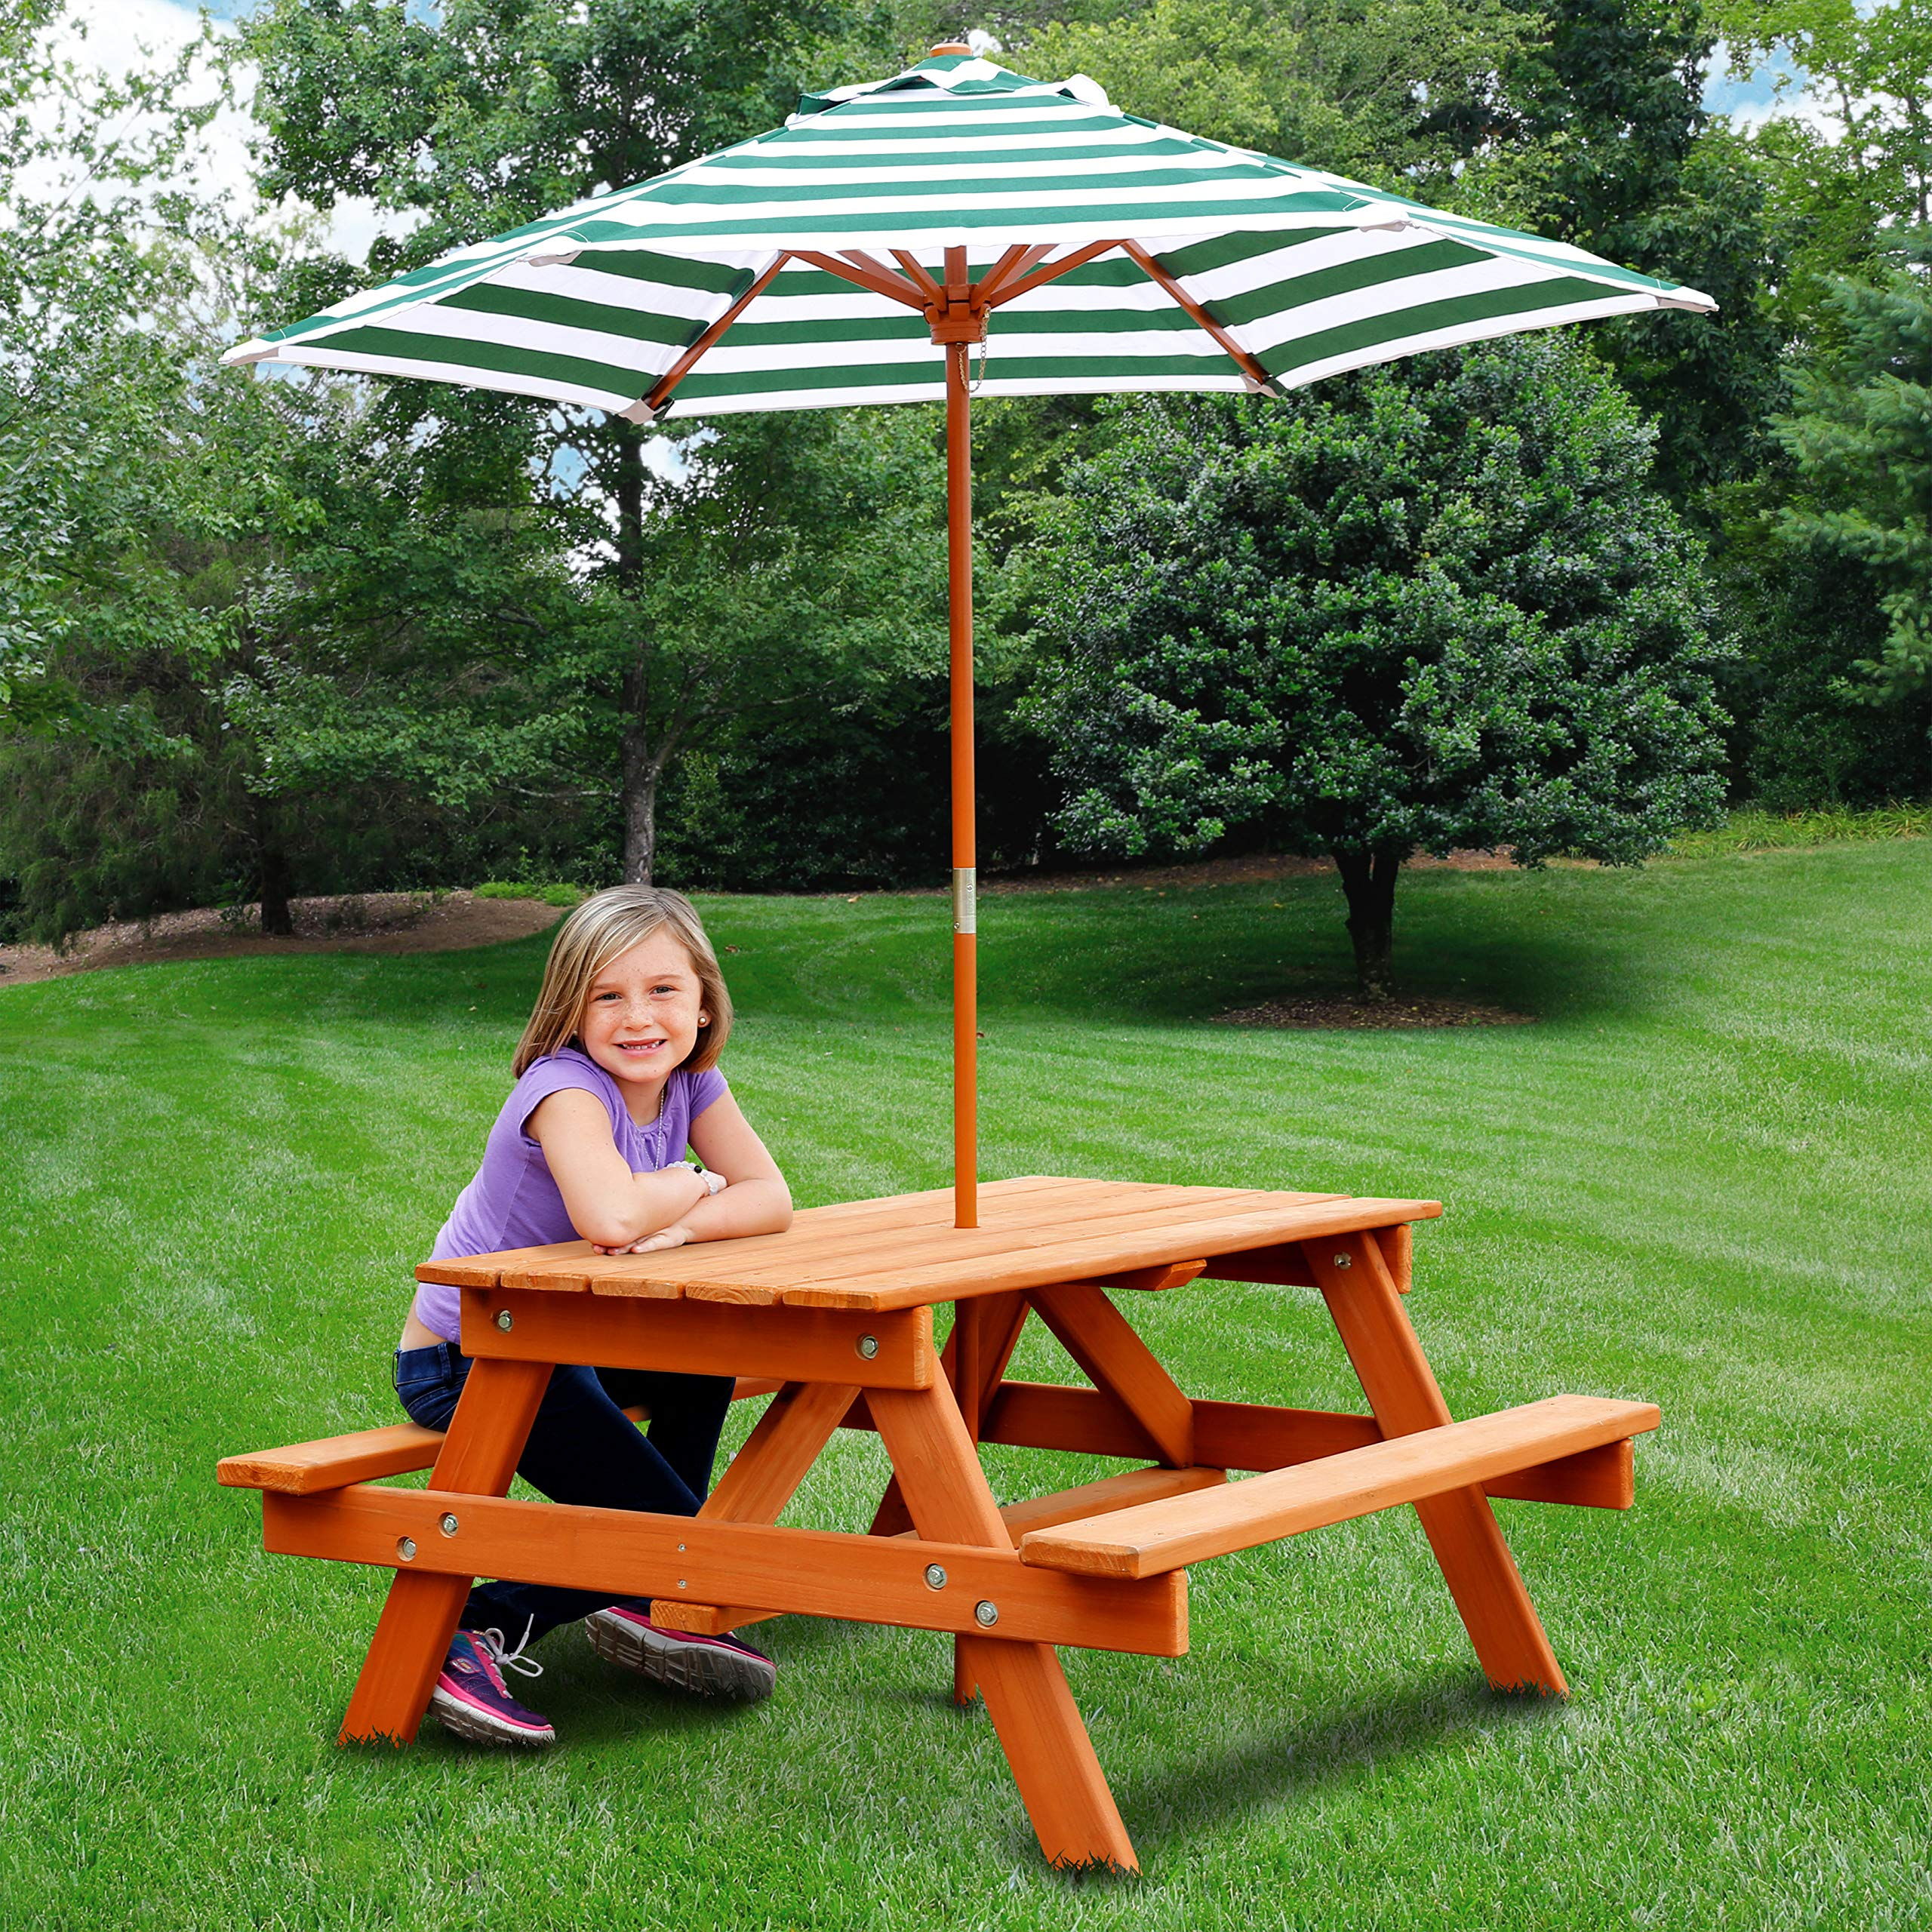 Jur_Global Wooden Children's Picnic Table with Umbrella by Jur_Global (Image #5)